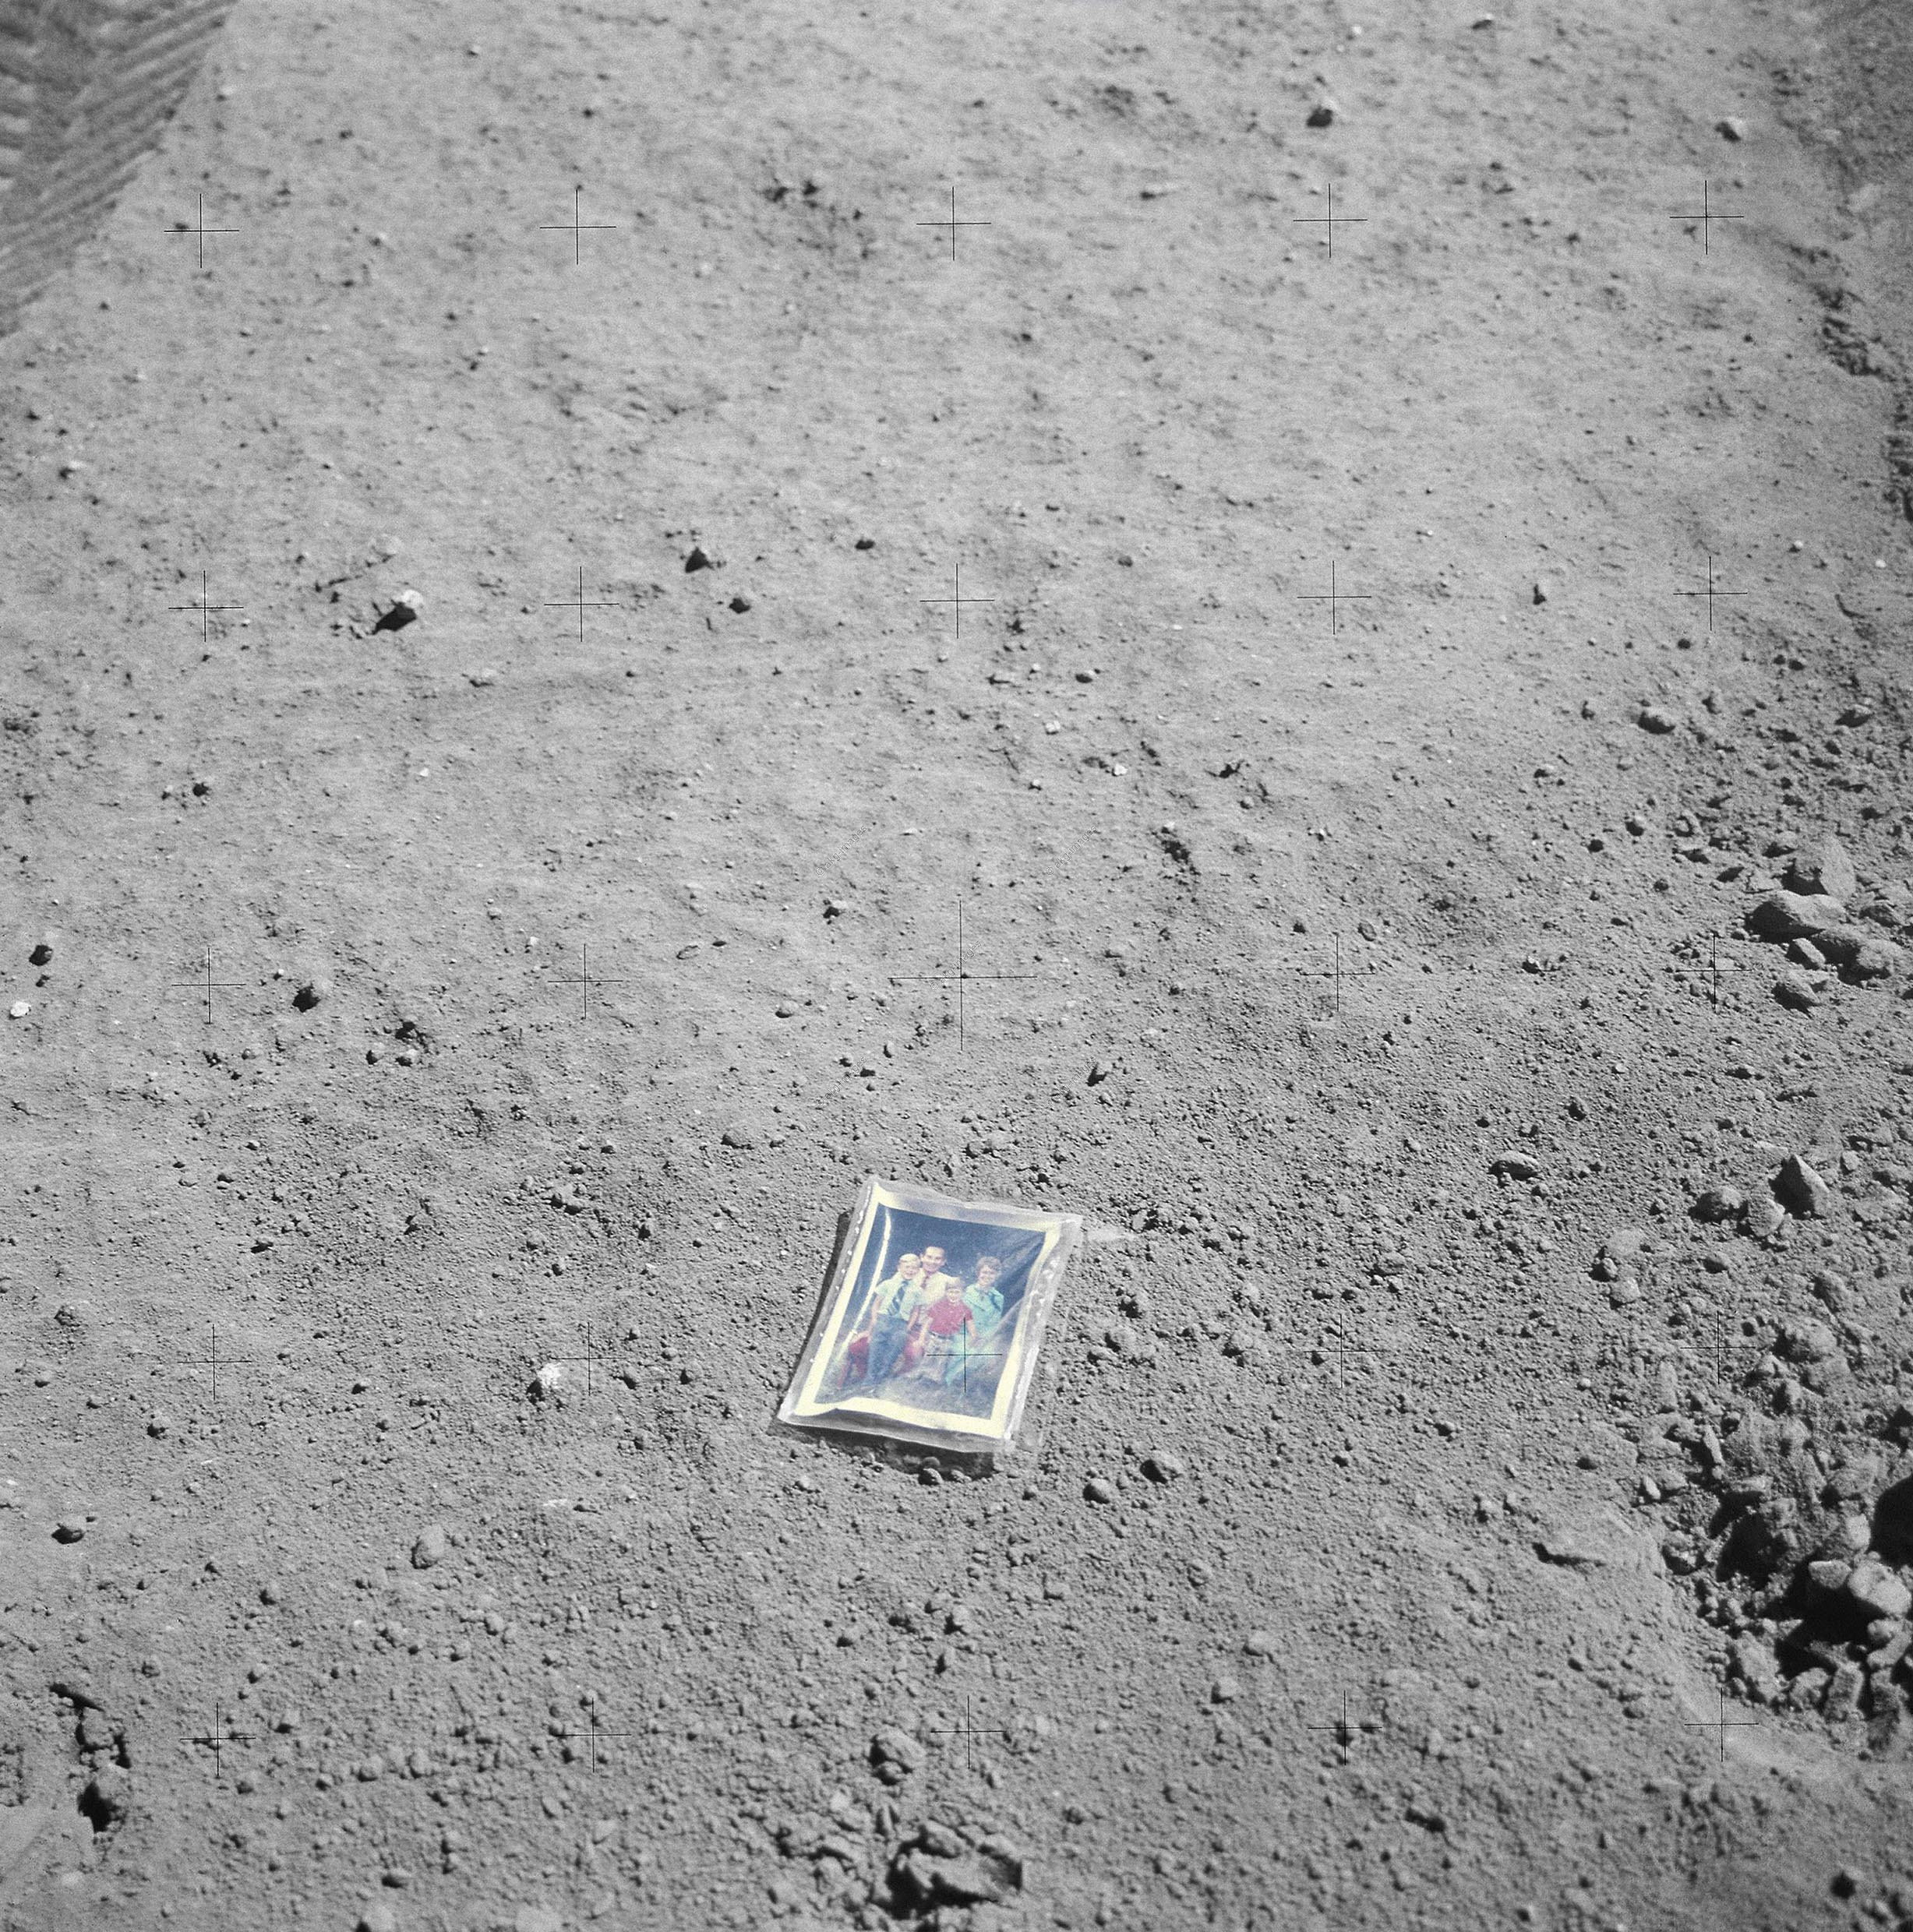 Family portrait photograph left on the Moon by Apollo 16 astronaut Charles Duke Jr. 1972